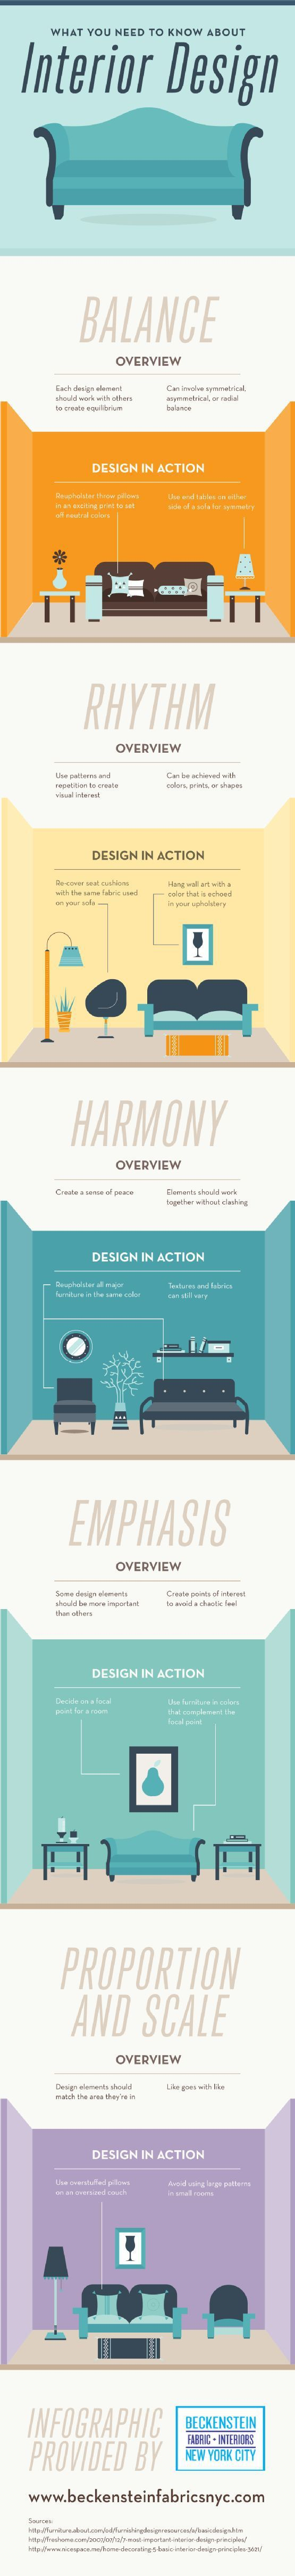 Everything You Need To Know About Interior Design 320 best interior design images on pinterest | home, interior